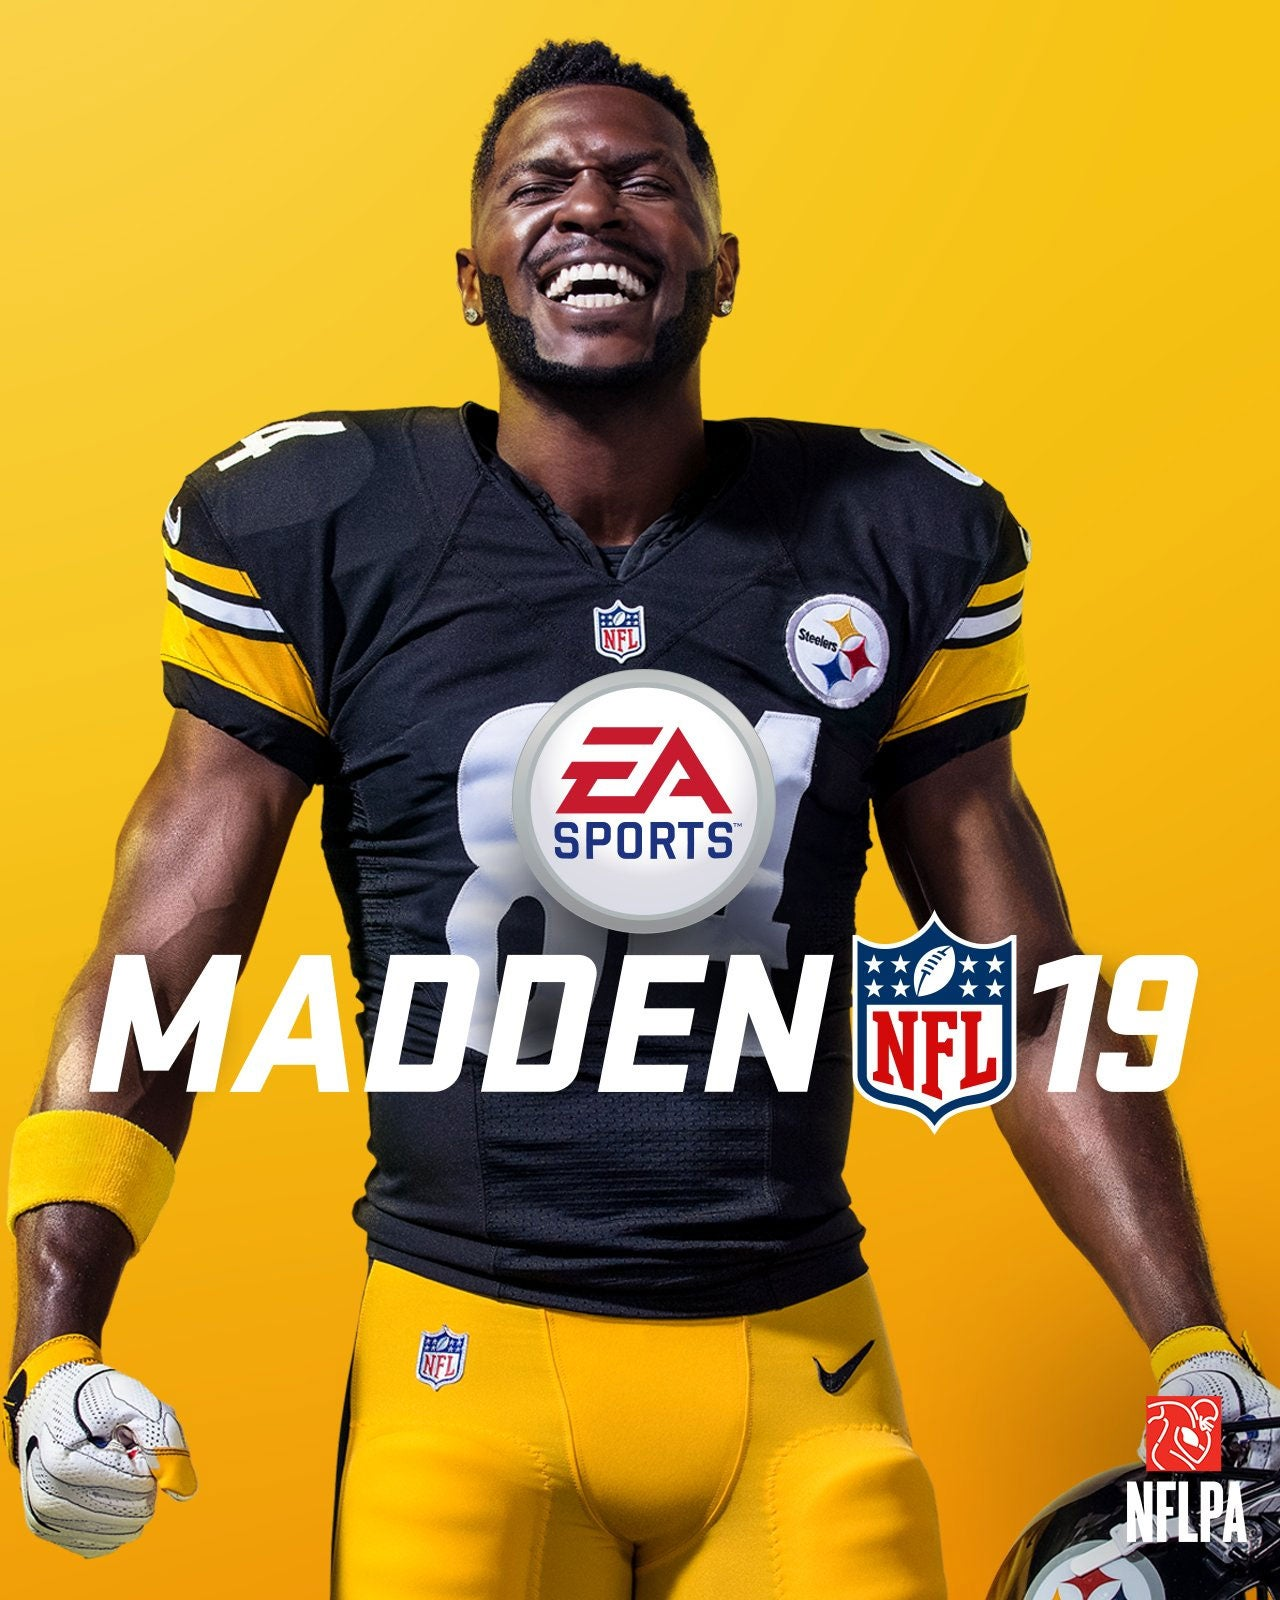 Antonio Brown Is Madden 19's Cover Star